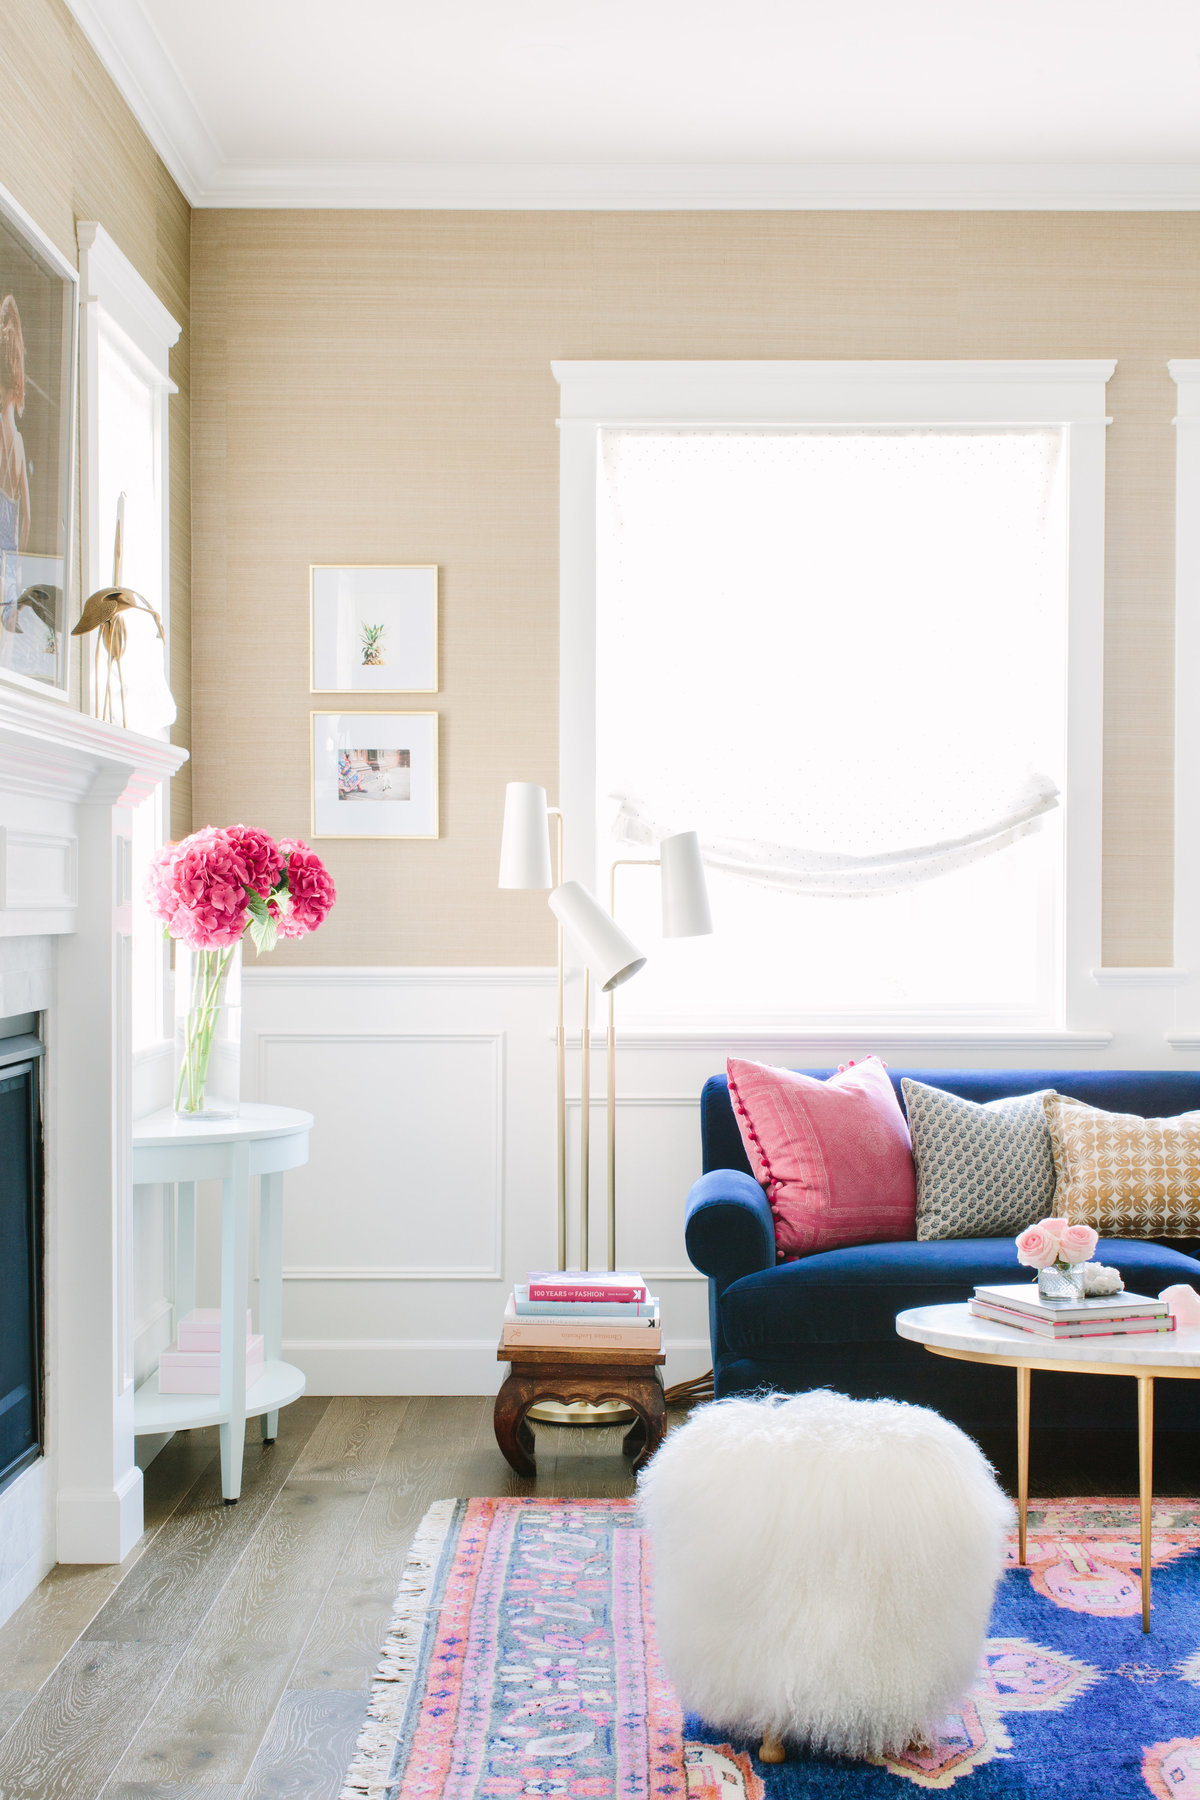 Traditional and modern navy and pink living room